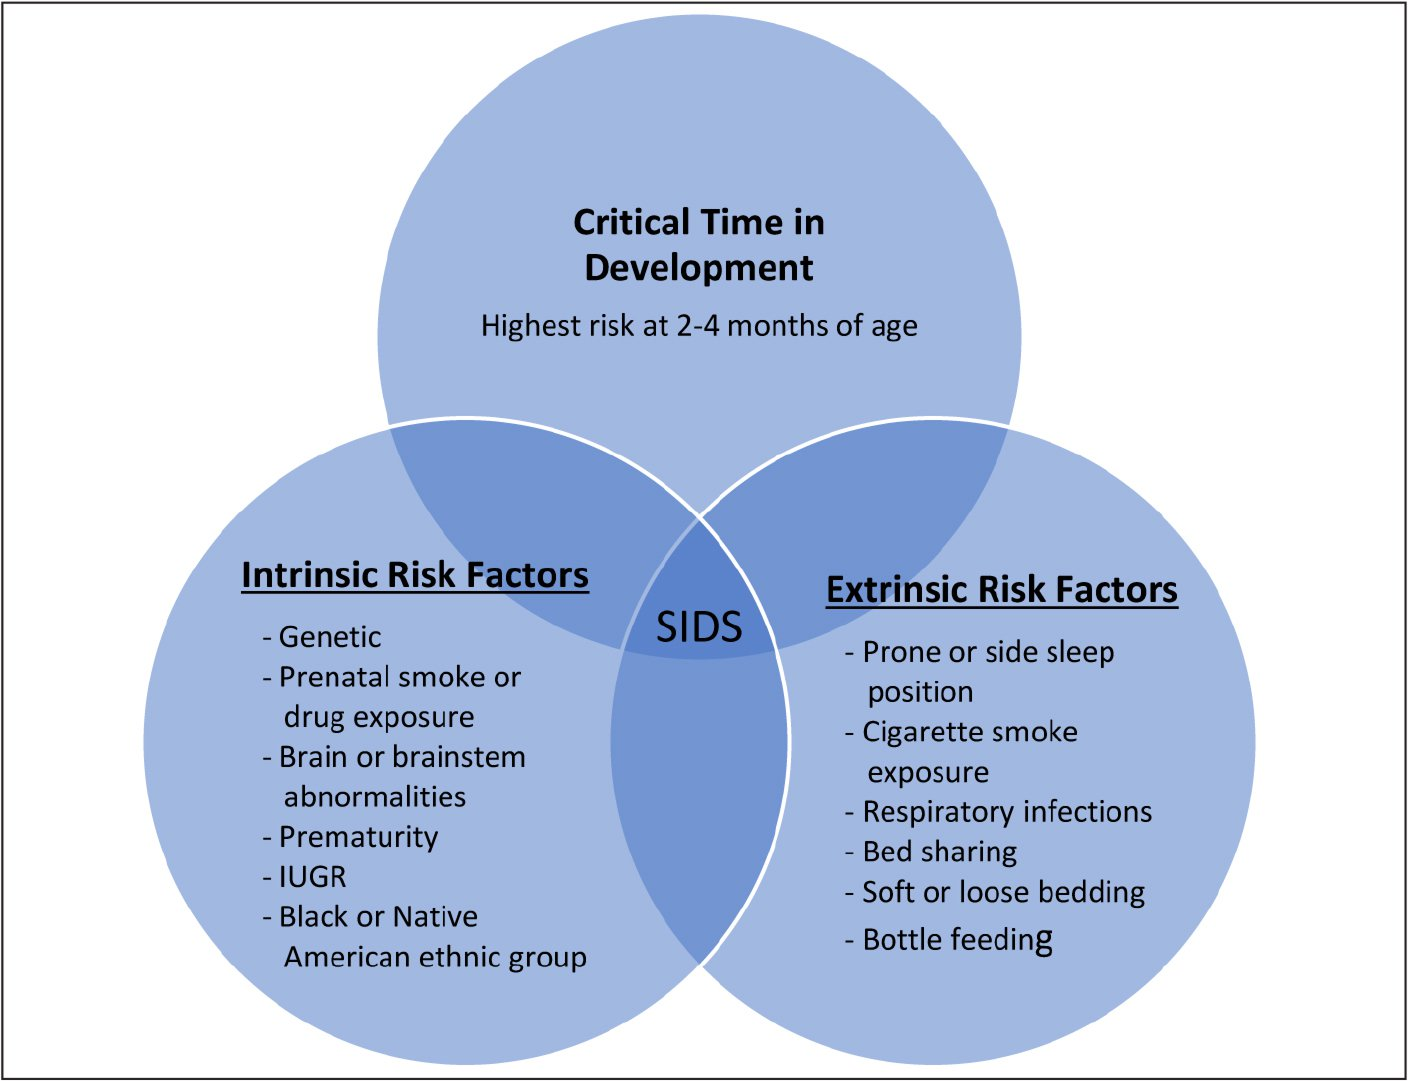 Triple-risk model for sudden infant death syndrome. IUGR, intrauterine growth restricted; SIDS, sudden infant death syndrome. Adapted from Filiano and Kinney.5